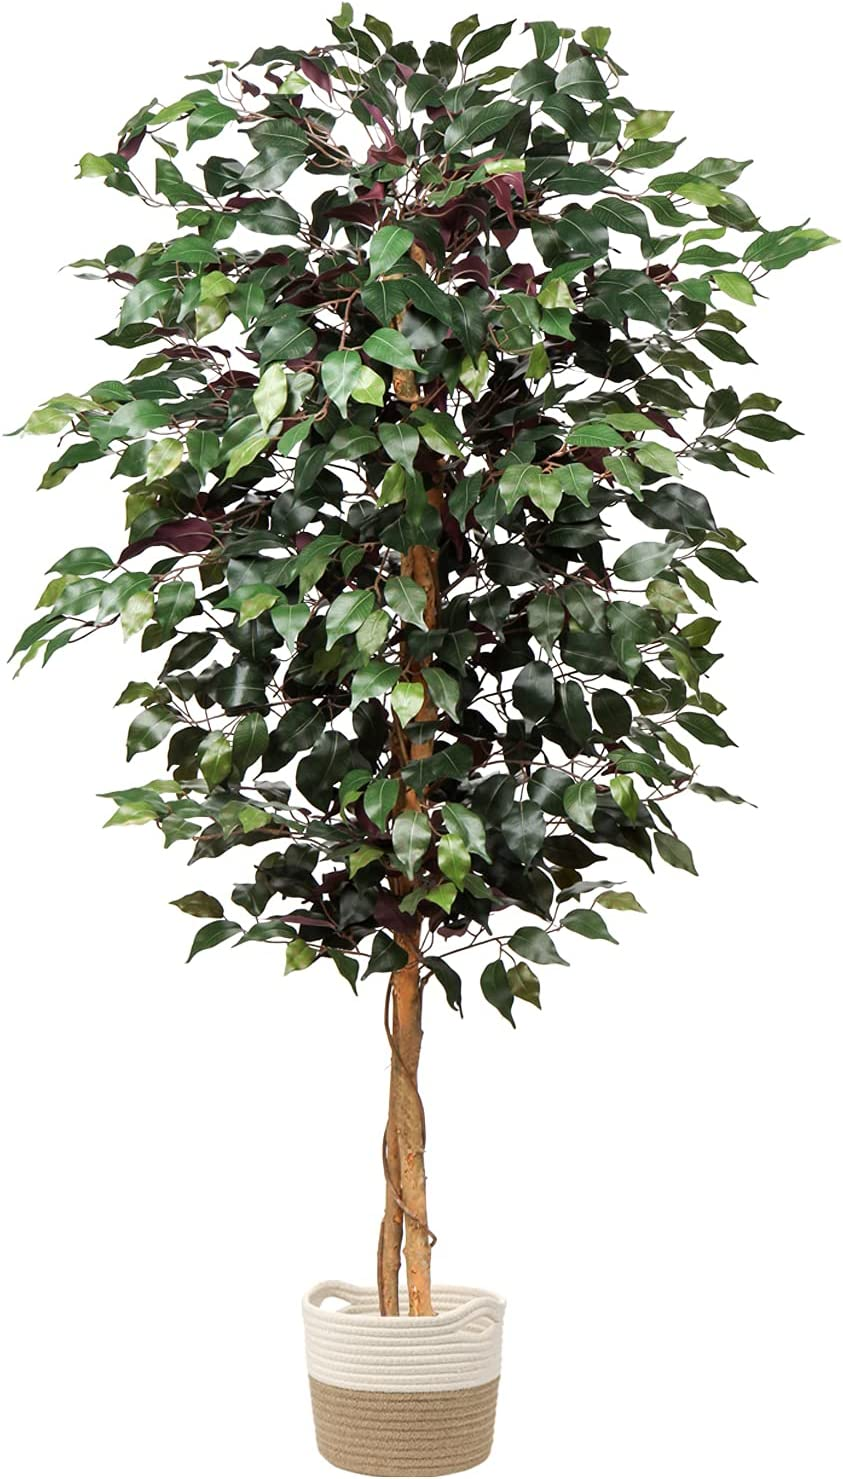 Artificial Ficus Tree 5ft in Cotton Pot Fake Silk Plant with Green Red Leaves Natural Trunk for Indoor Outdoor Home Garden Decor